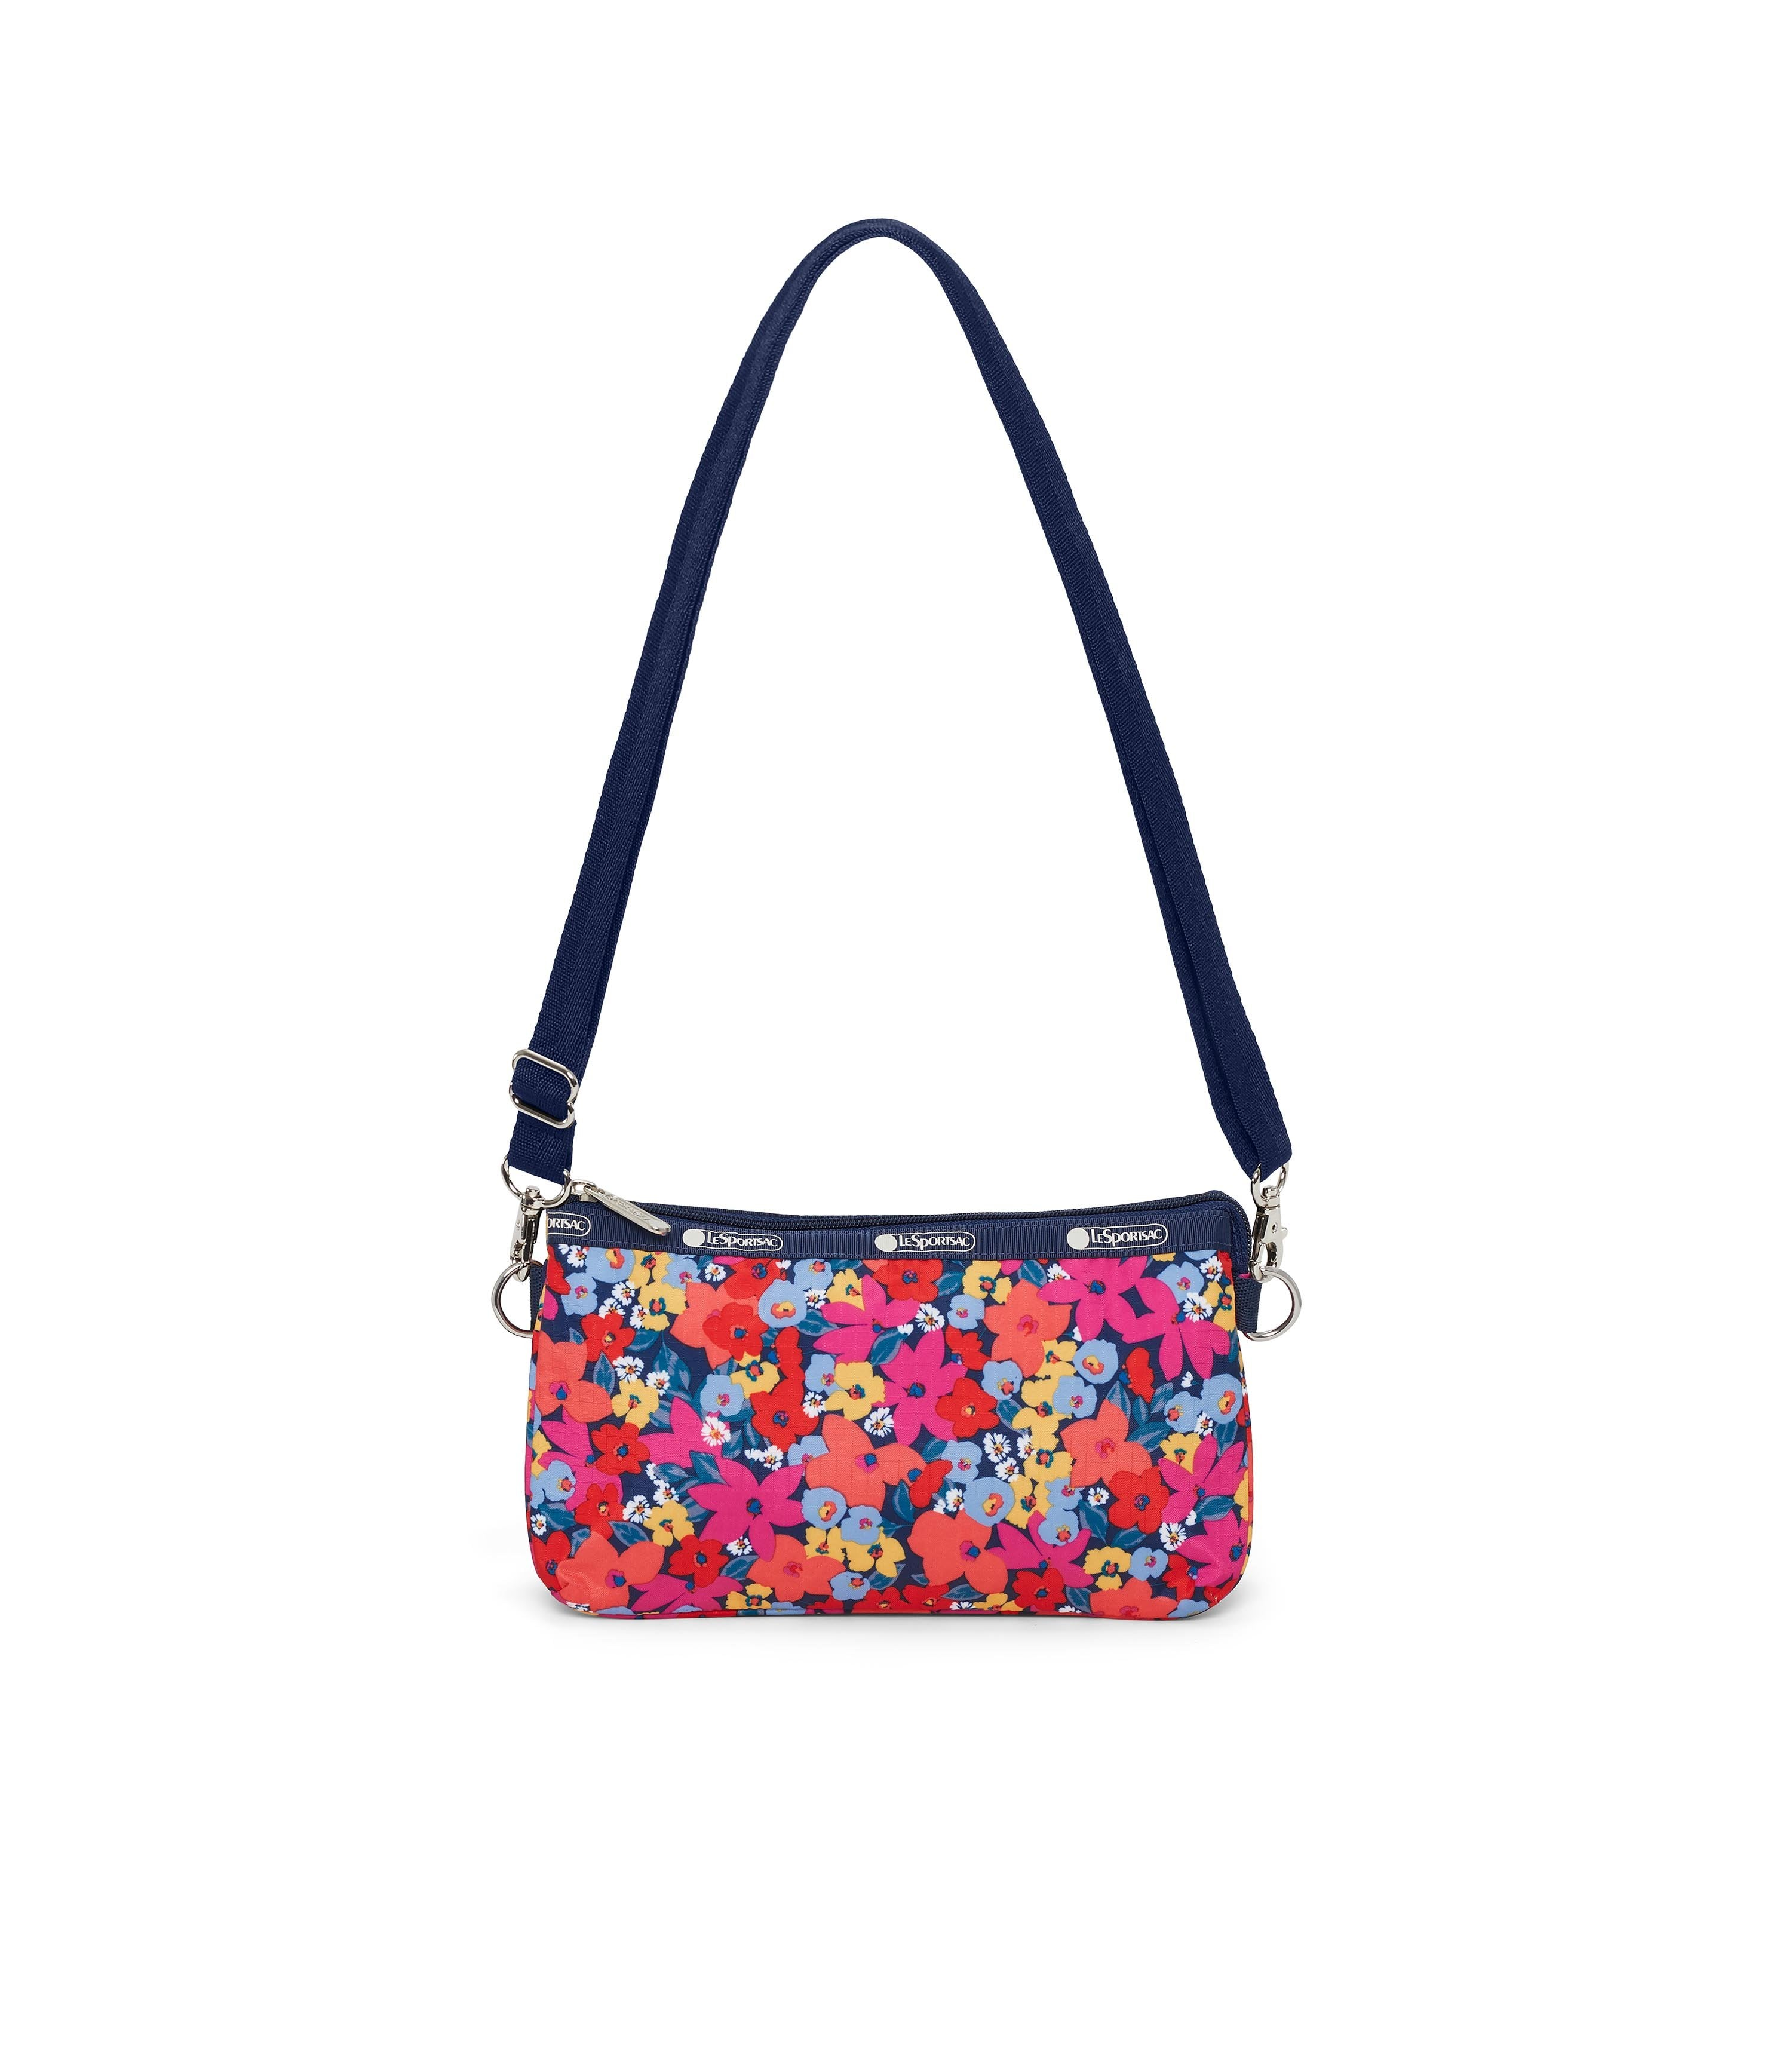 LeSportsac - Medium Koko Crossbody - Handbags - Bright Isle Floral print